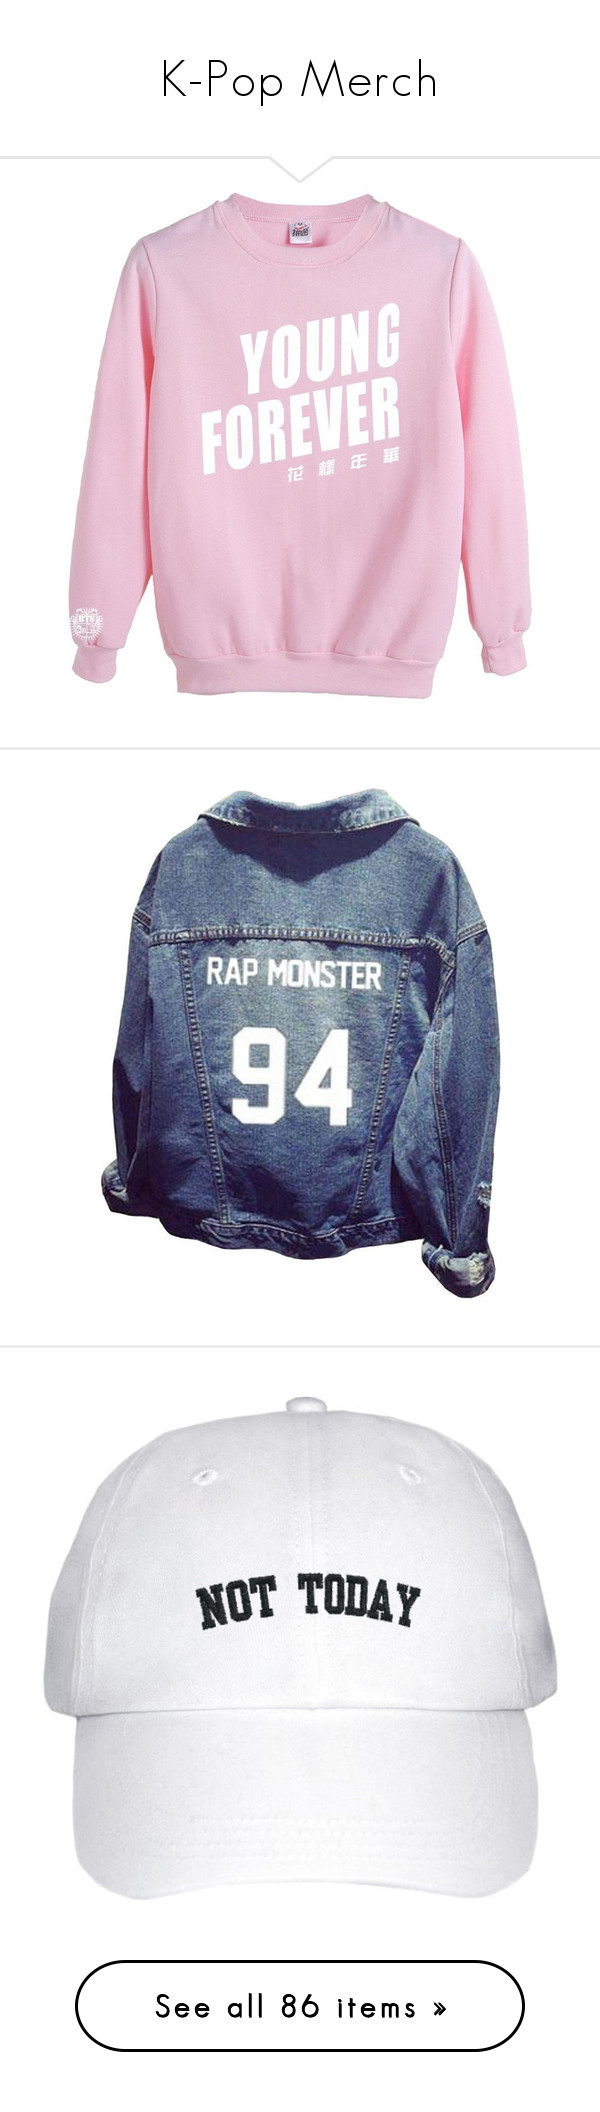 K Pop Merch By Jaypark Aomg Liked On Polyvore Featuring Tops Bts Outerwear Jackets Denim Sports Jacket Long Sleeve Denim Jacket Merch Blue Denim Jacket [ 2112 x 600 Pixel ]